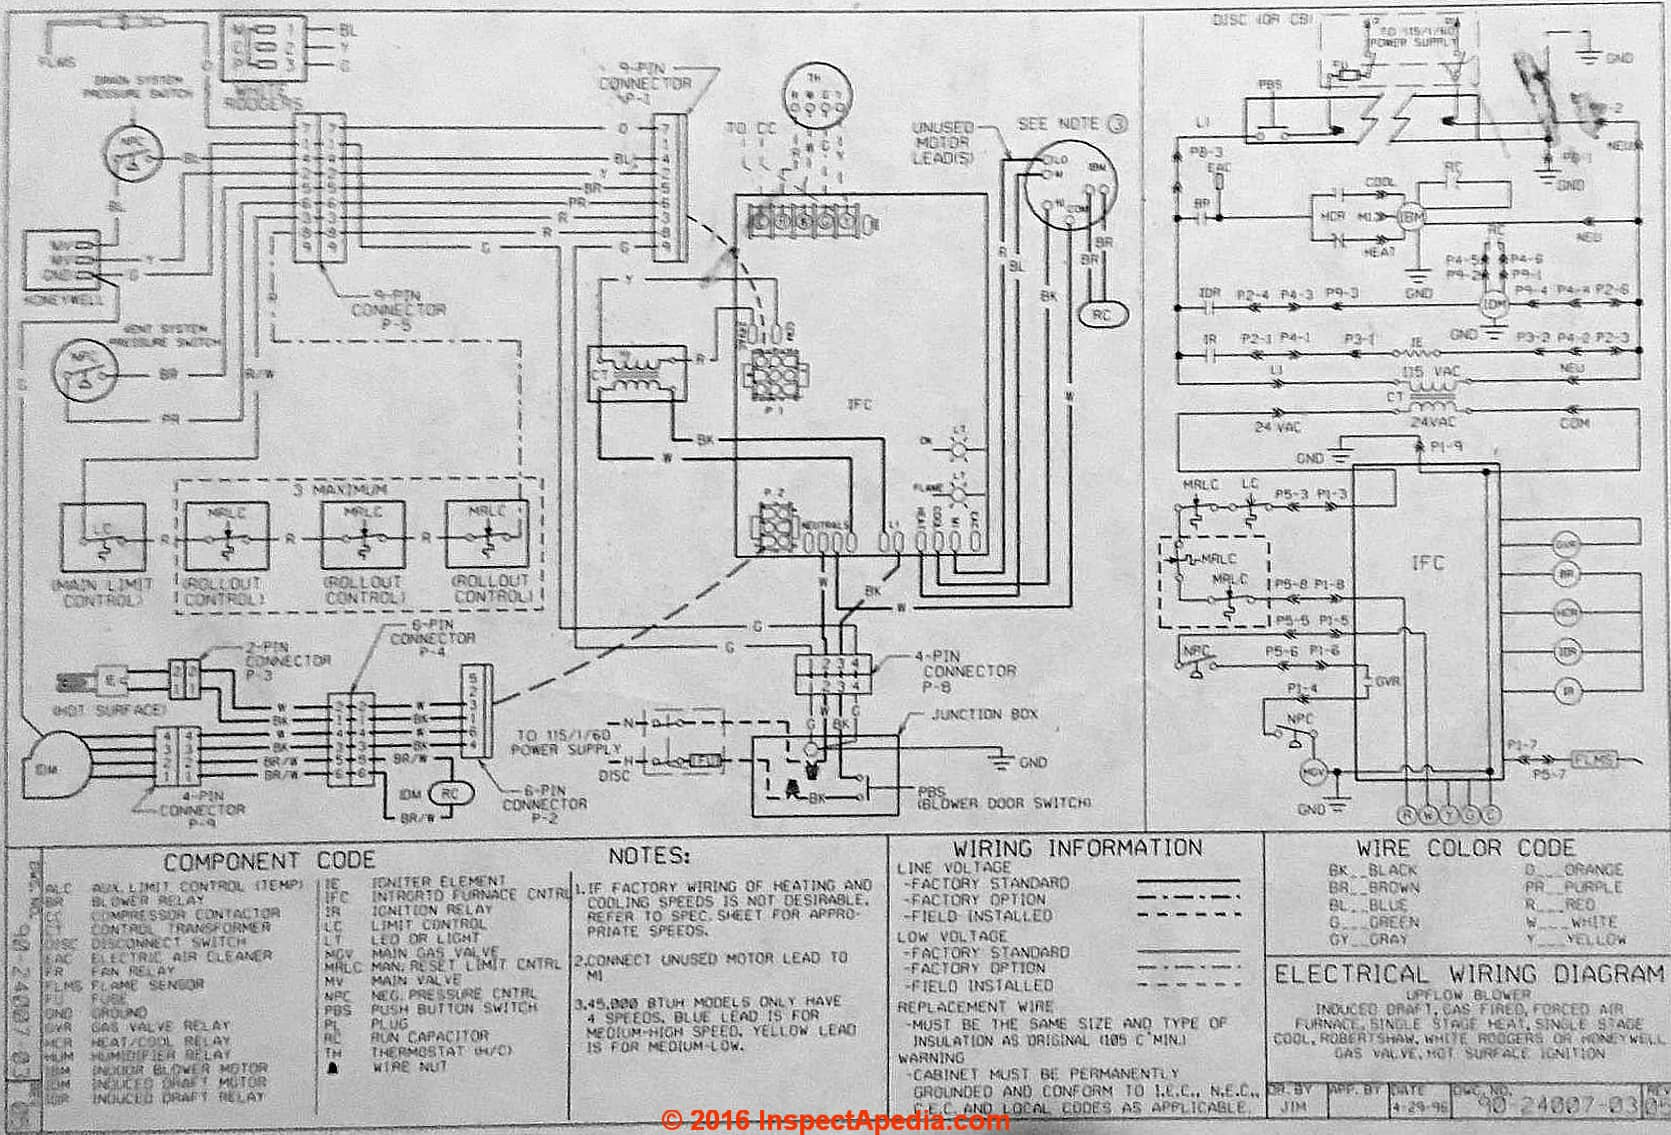 Rheem AHU wiring diagram typical at InspectApedia.com